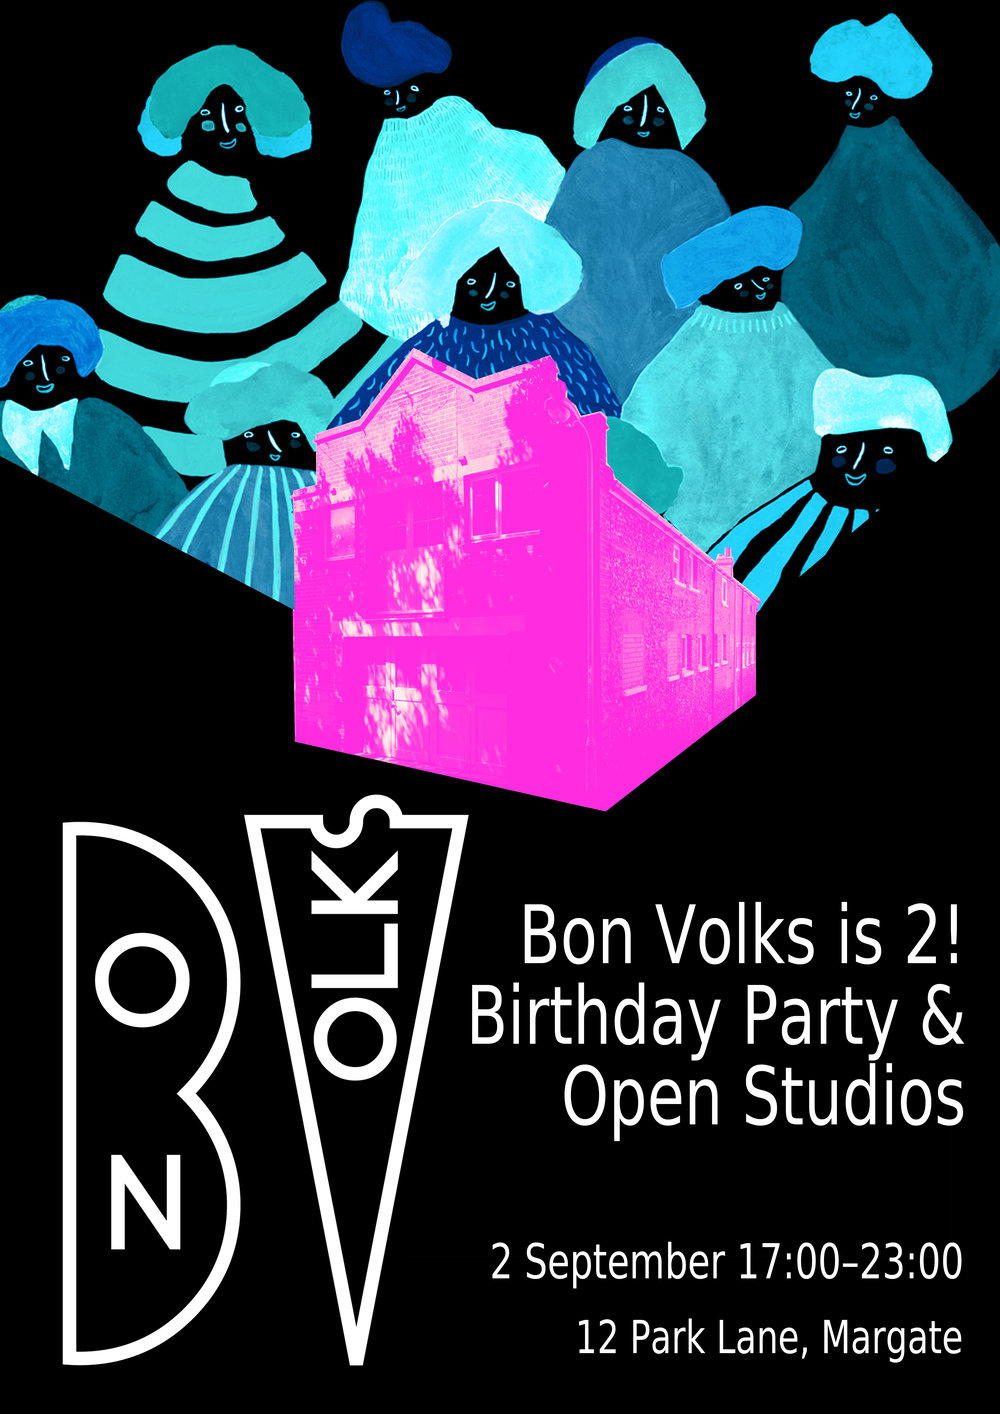 Bon Volks Studio Birthday Party